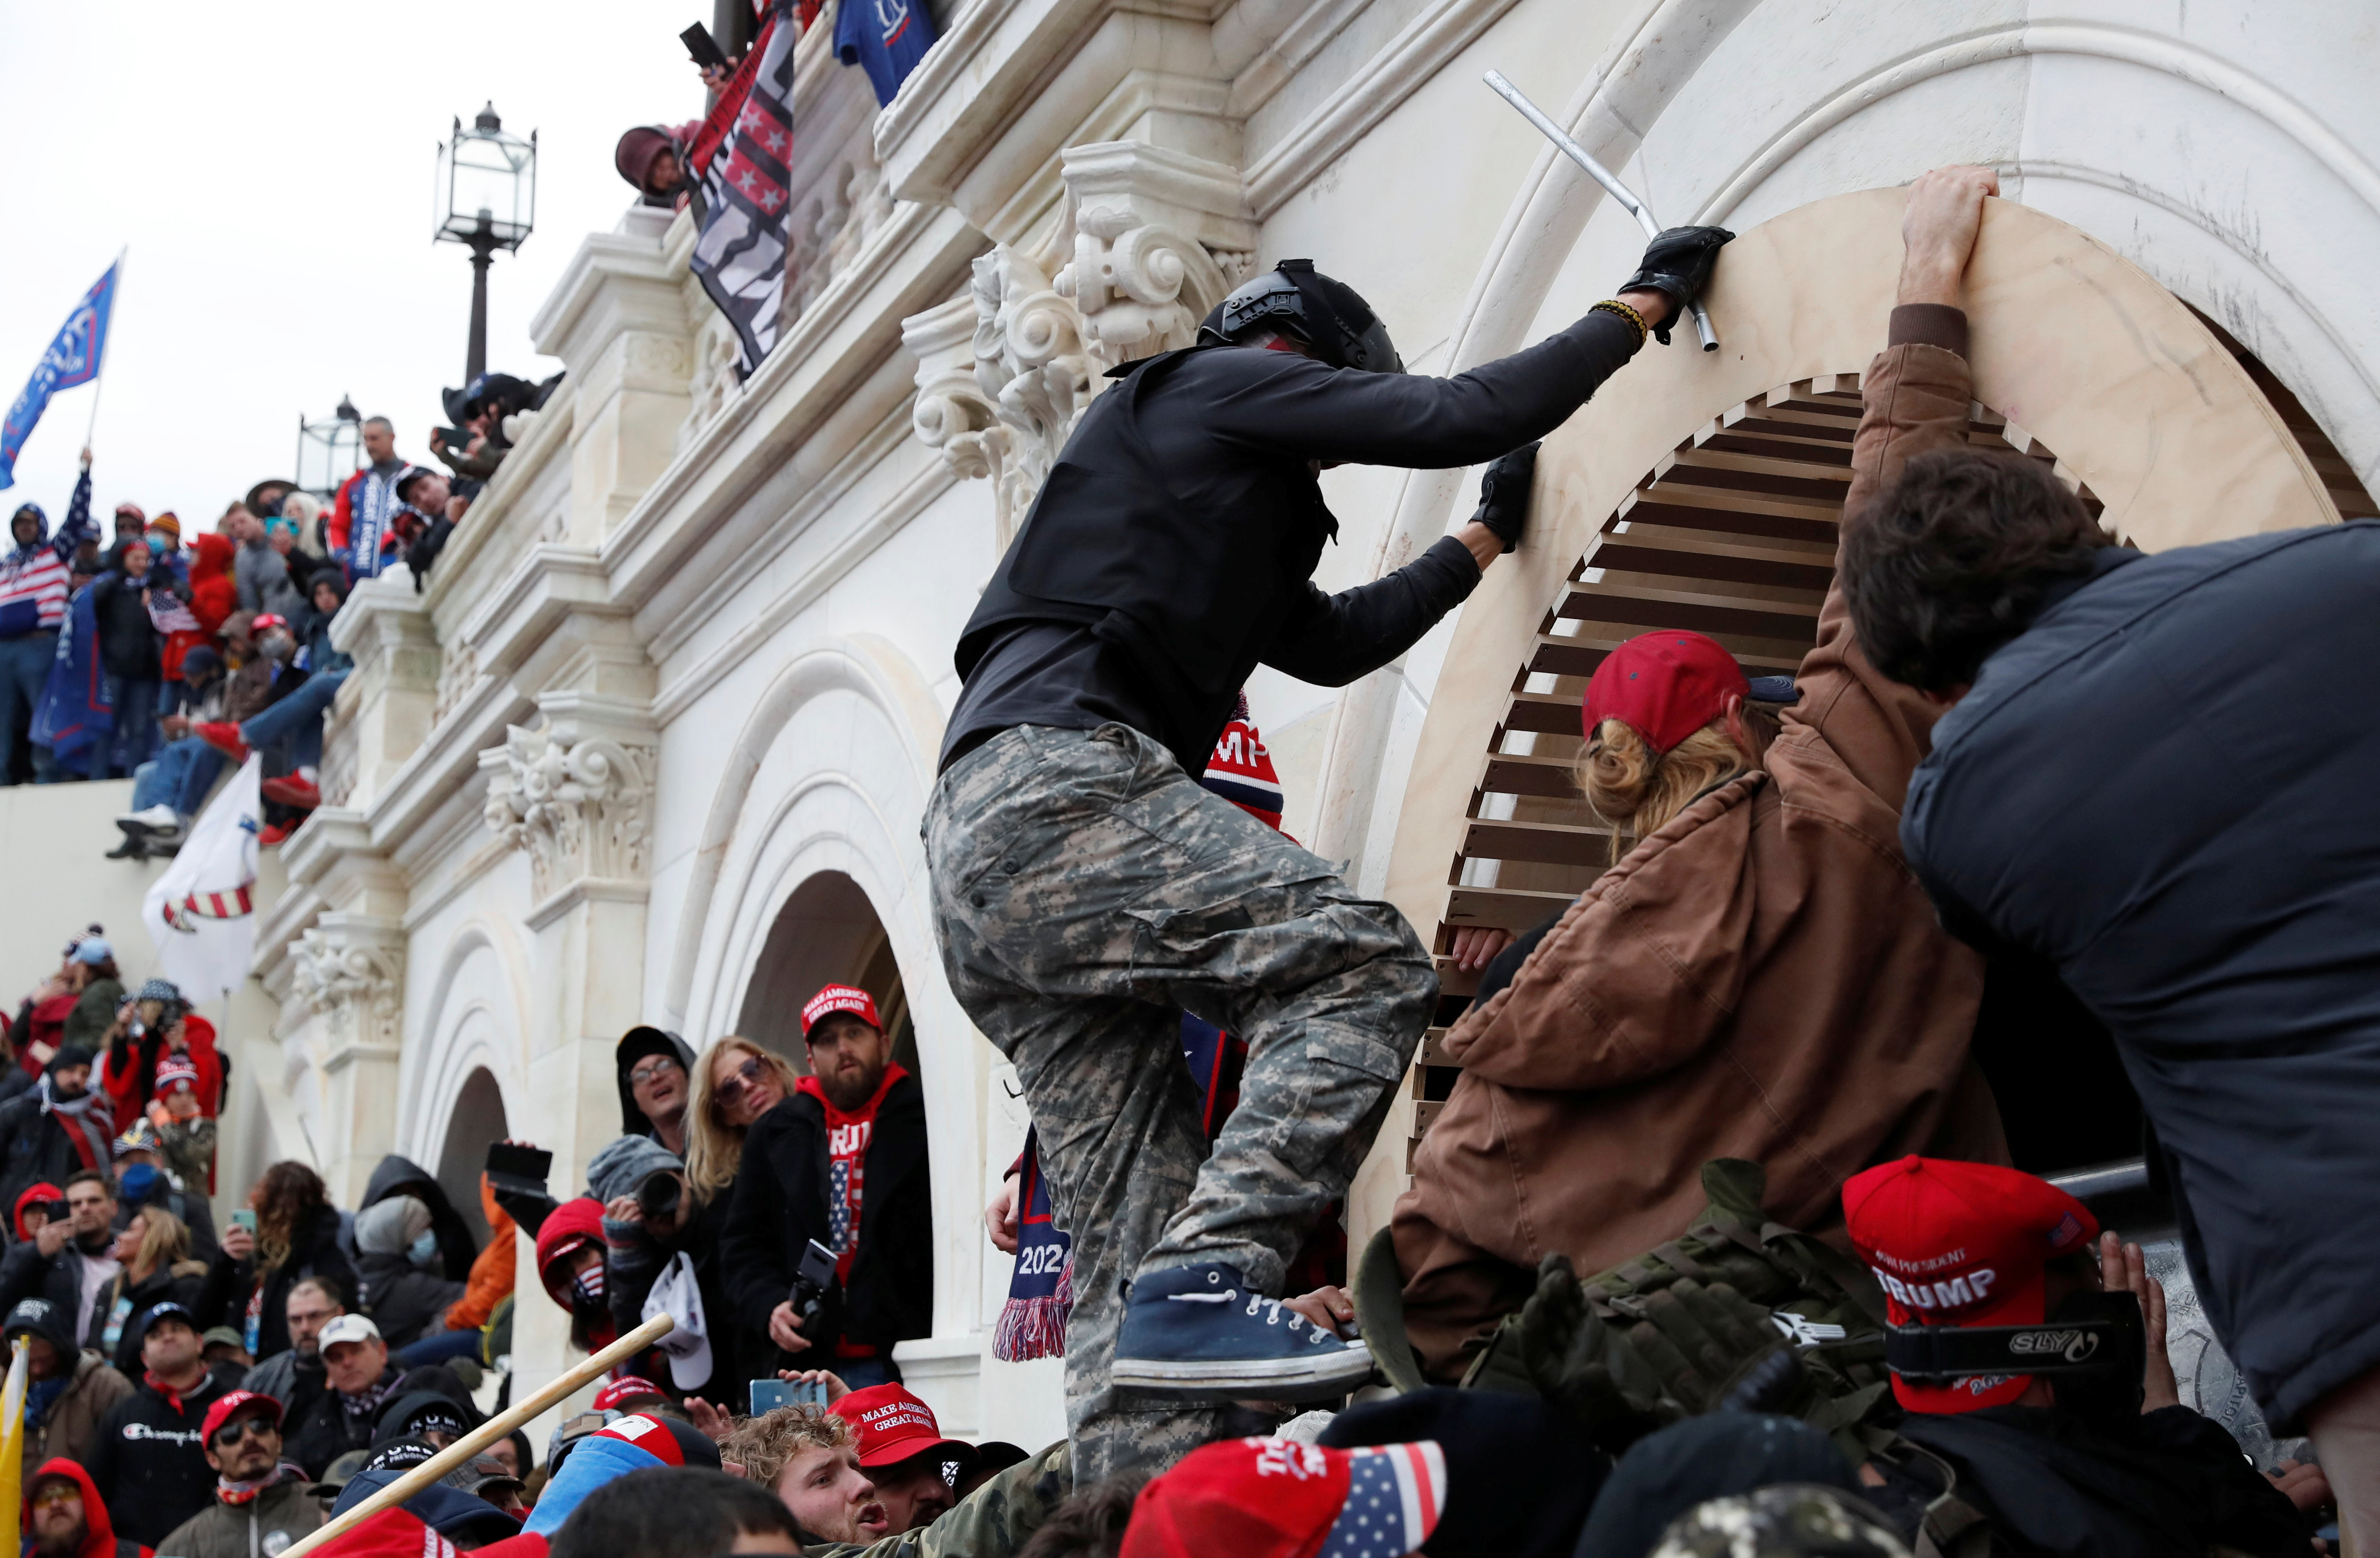 Pro-Trump protesters scale a wall as they storm the U.S. Capitol Building, during clashes with Capitol police at a rally to contest the certification of the 2020 U.S. presidential election results by the U.S. Congress, in Washington, U.S, January 6, 2021. REUTERS/Shannon Stapleton